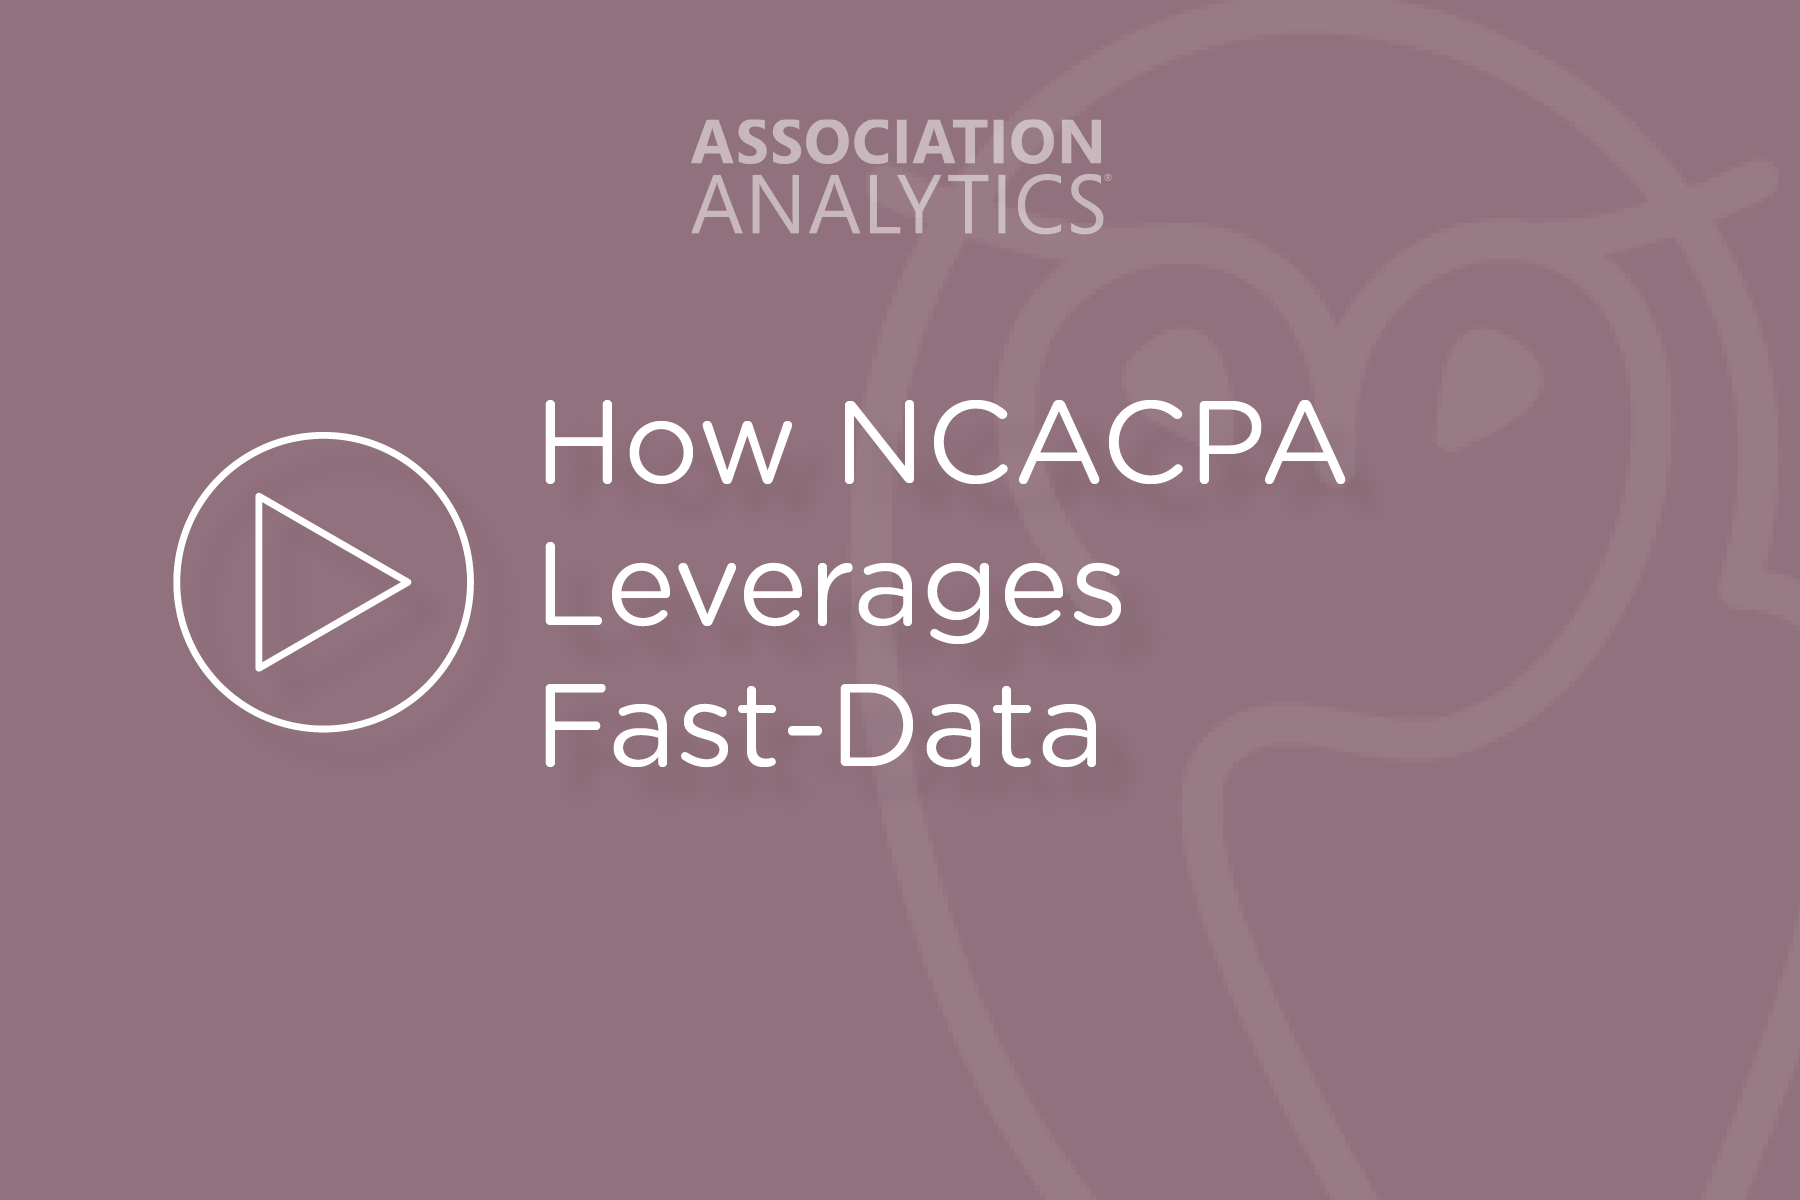 How NCACPA Leverages Fast-Data